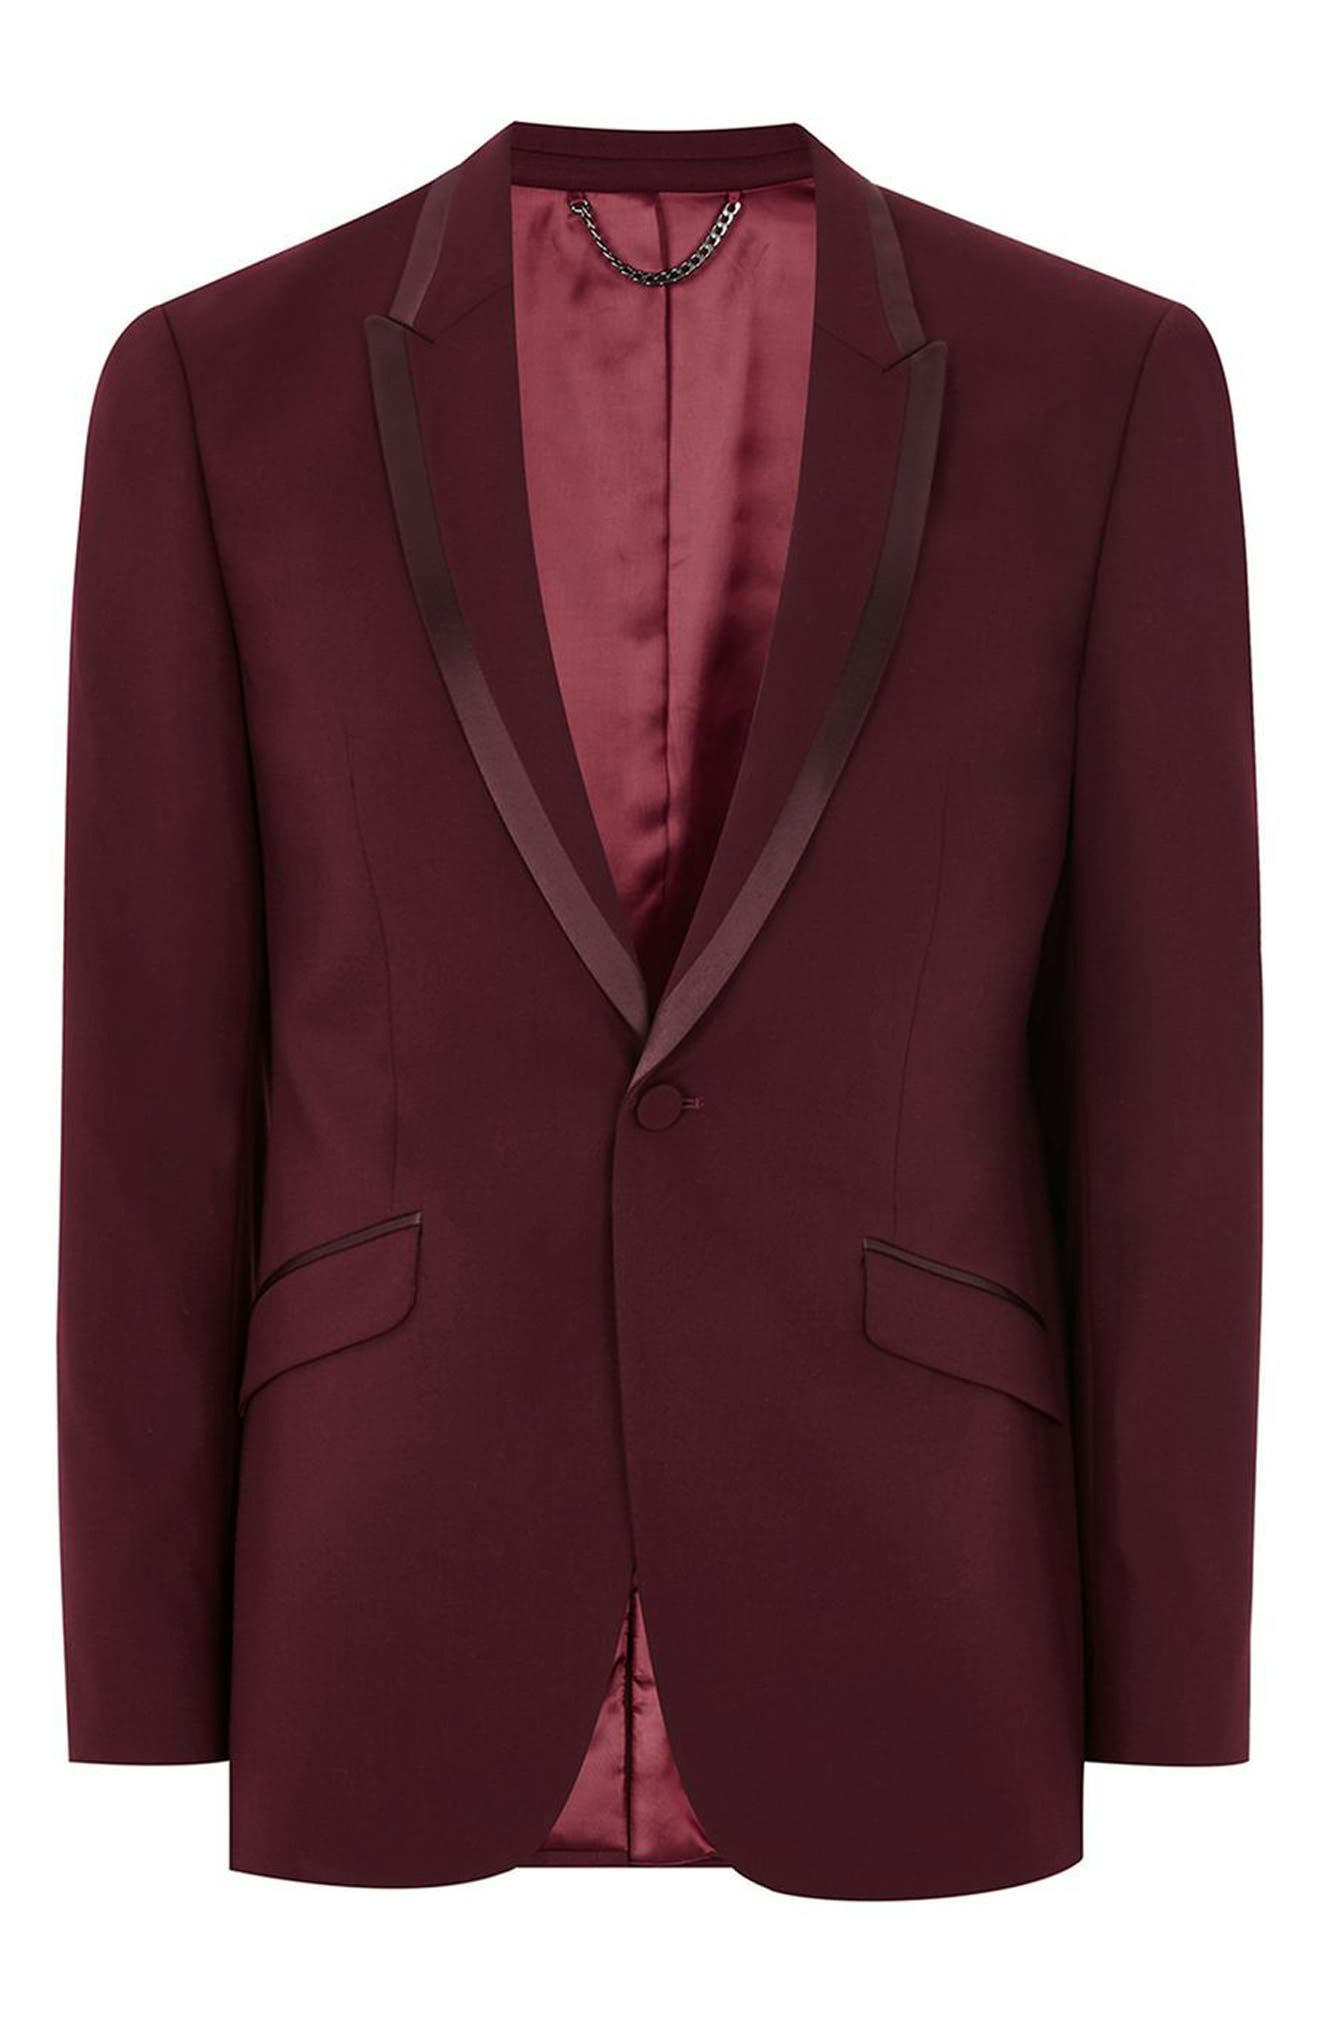 Skinny Fit Burgundy Tuxedo Jacket,                             Alternate thumbnail 4, color,